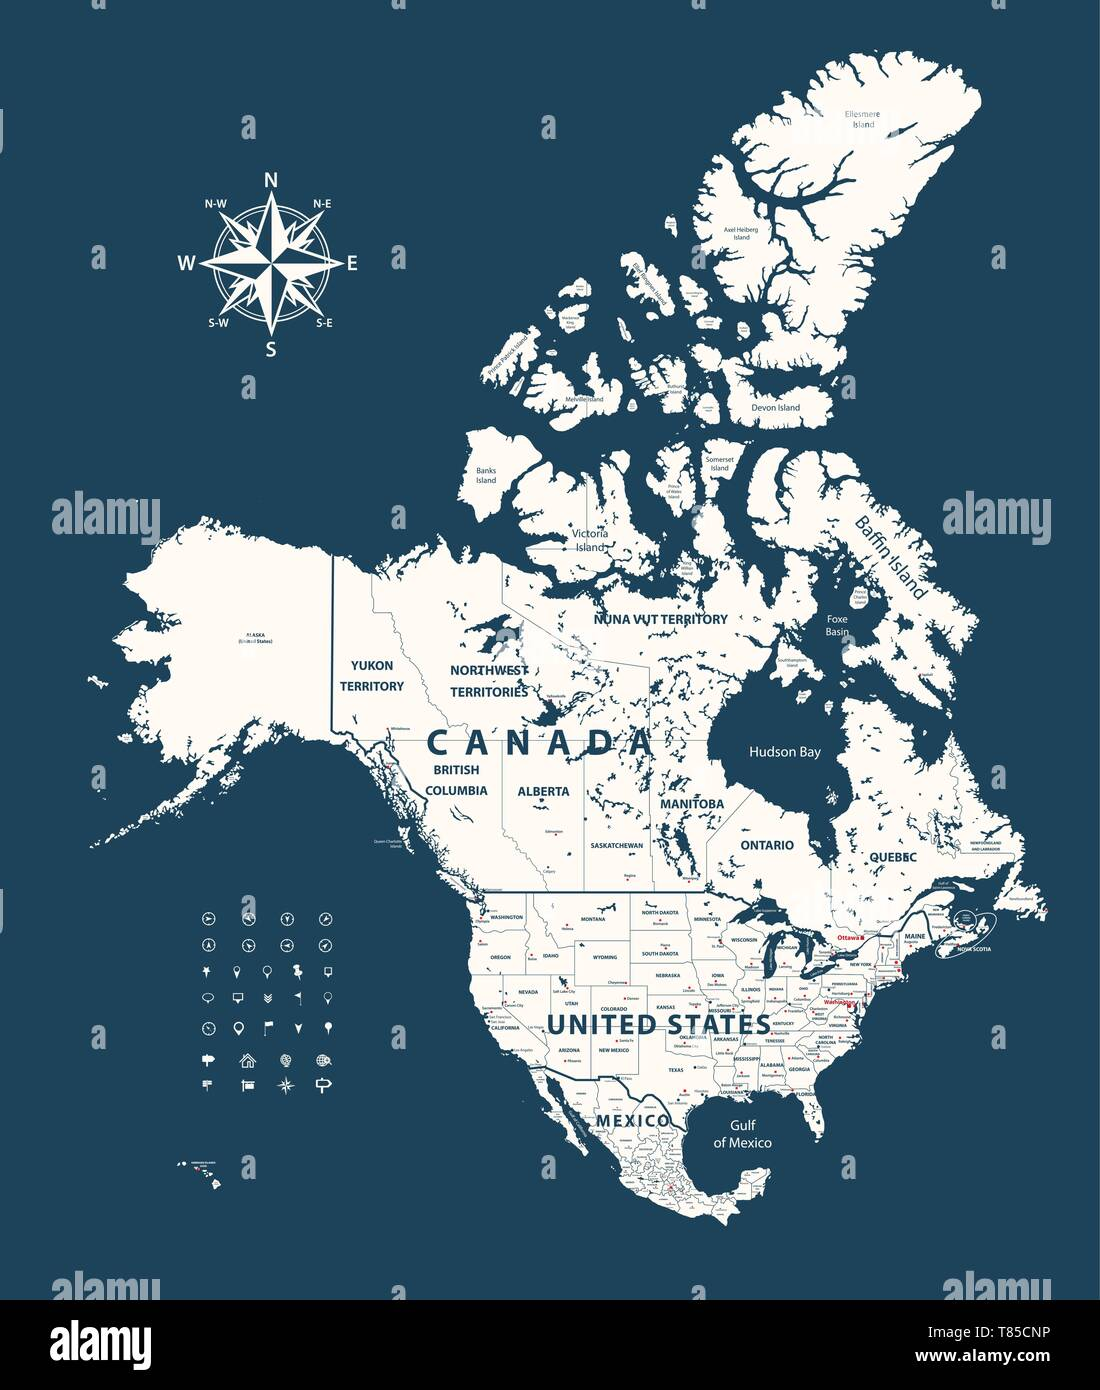 Vector Map Of Canada United States And Mexico With States Borders And Capital Cities Stock Vector Image Art Alamy